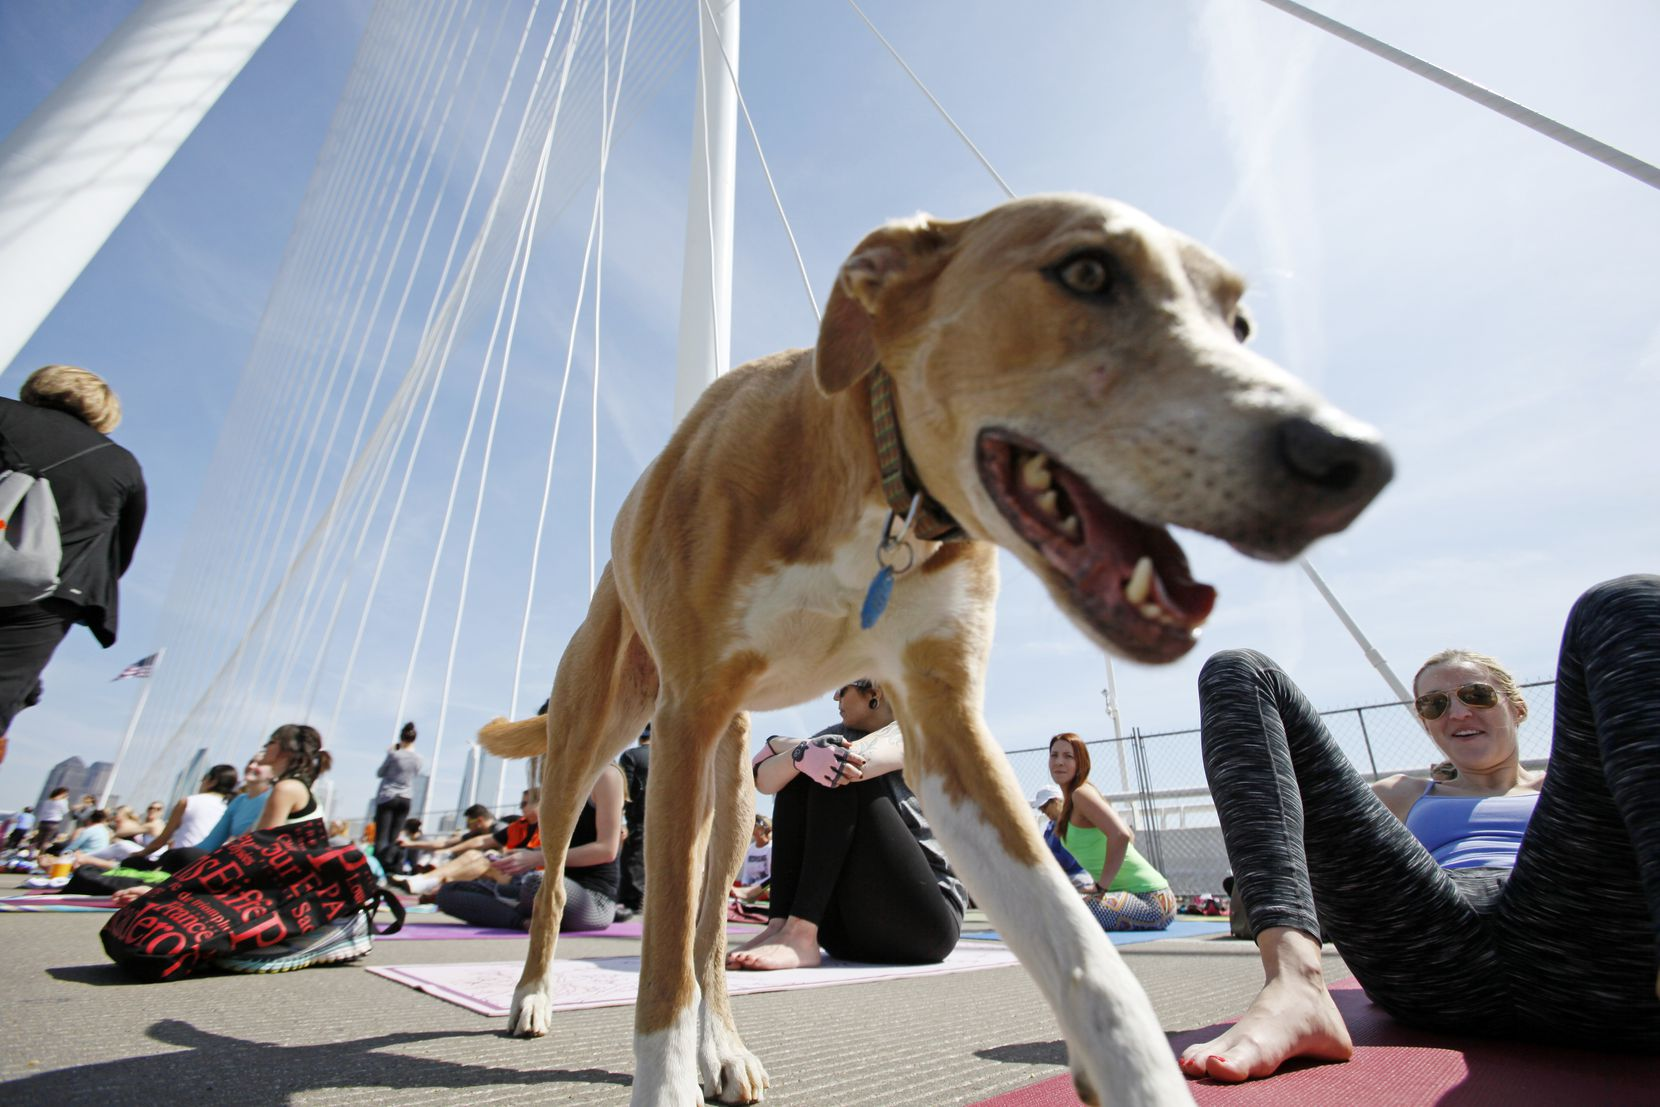 A dog named Maggie strolled between yoga enthusiasts  on the Margaret Hunt Hill Bridge during the All Out Trinity Festival.